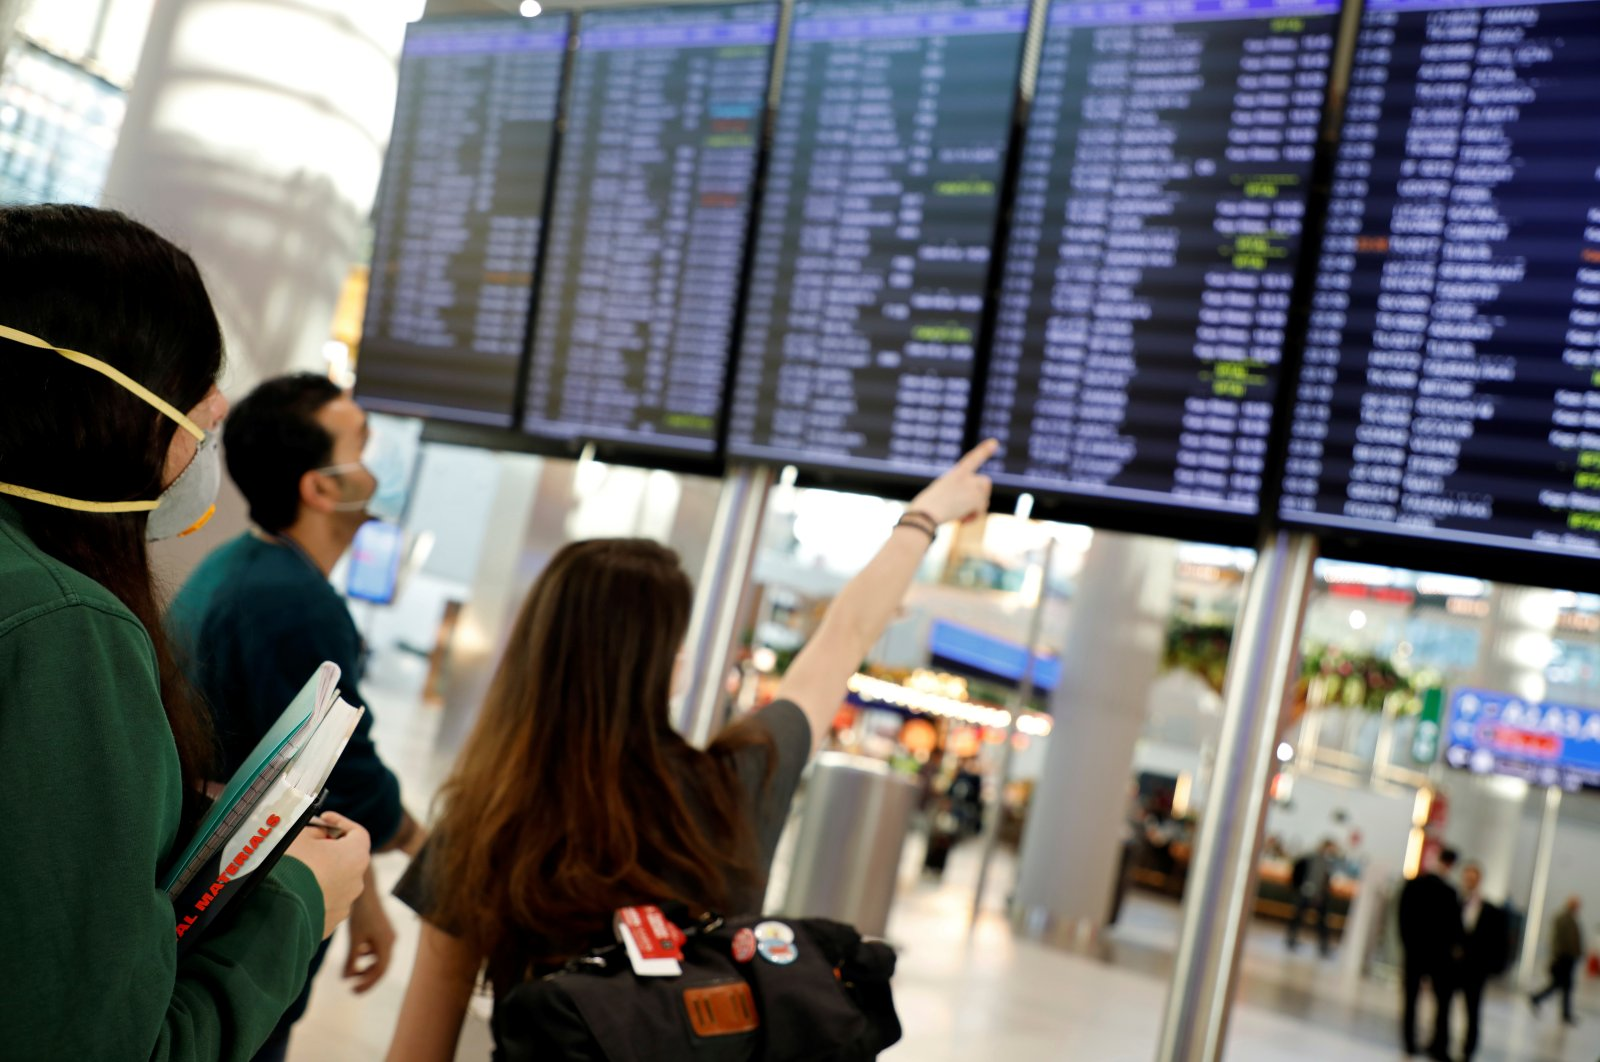 People, wearing protective face masks to protect against the coronavirus, look at flight status information at Istanbul Airport, Friday, March 13, 2020. (Reuters Photo)